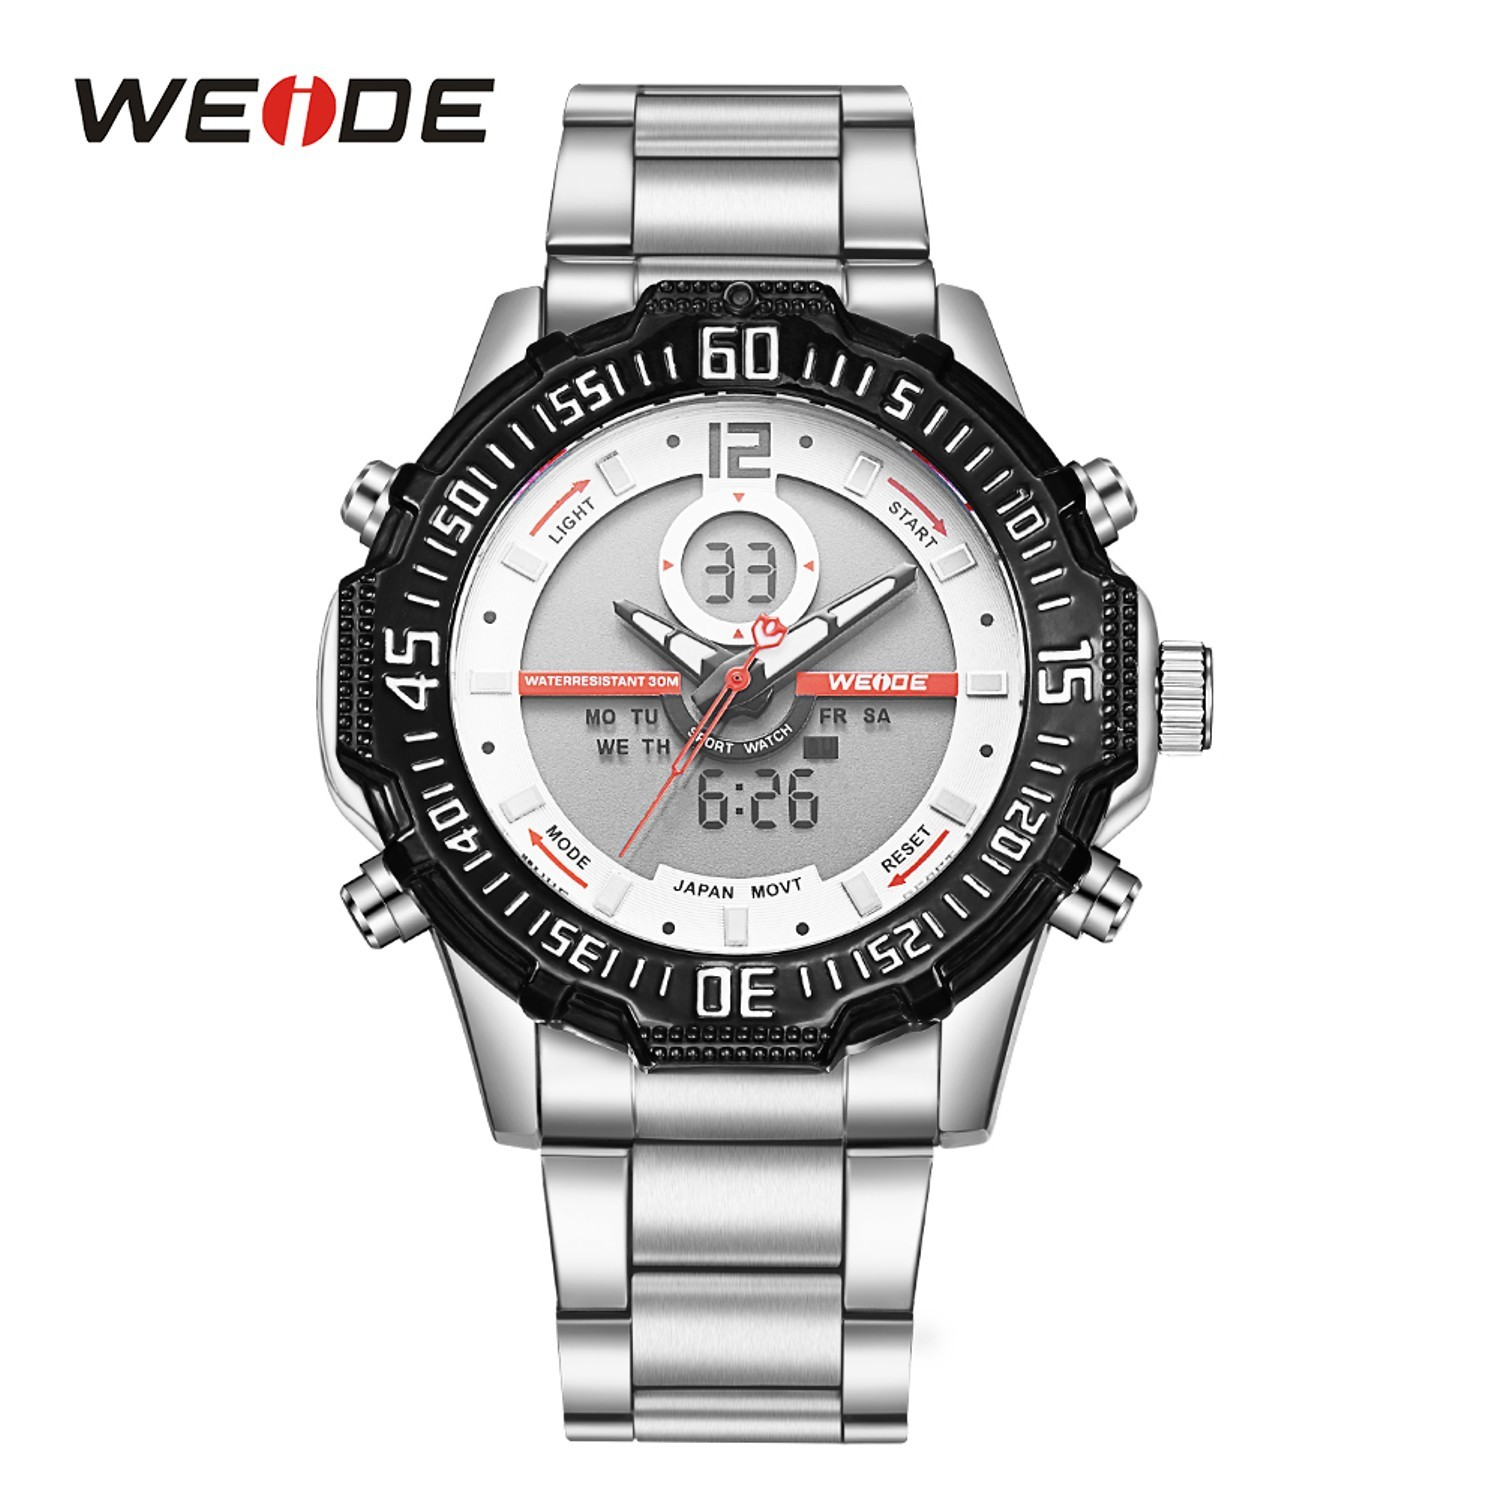 WEIDE-Mens-Fashion-Sport-Quartz-LCD-Dual-Display-Luminous-Back-Light-Analog-Day-Stainless-Steel-Band_1500x1500_STRETCH_295.jpg